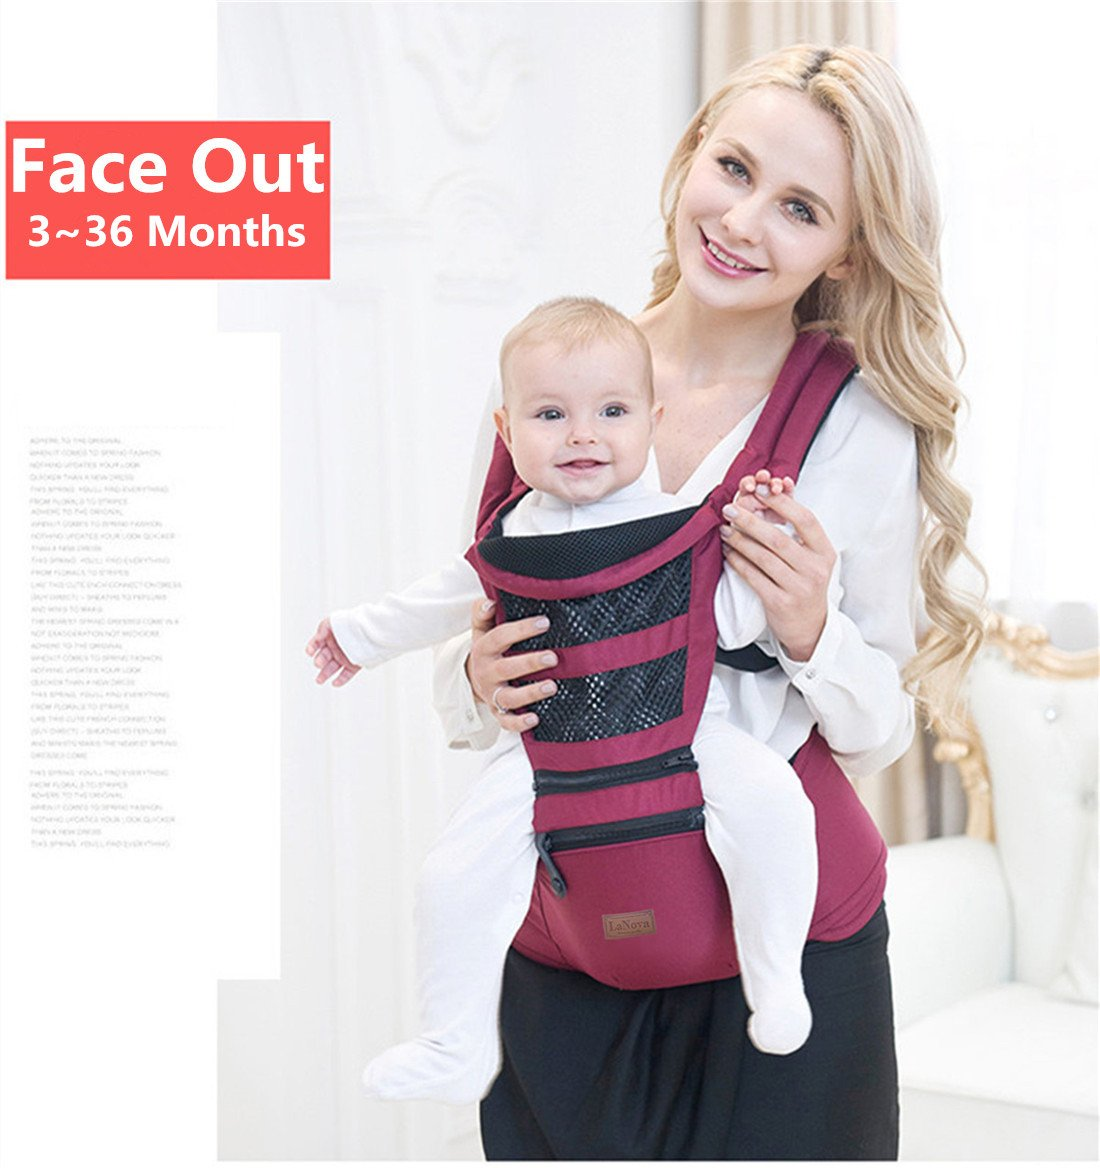 Buy How to fisher wear price baby carrier picture trends